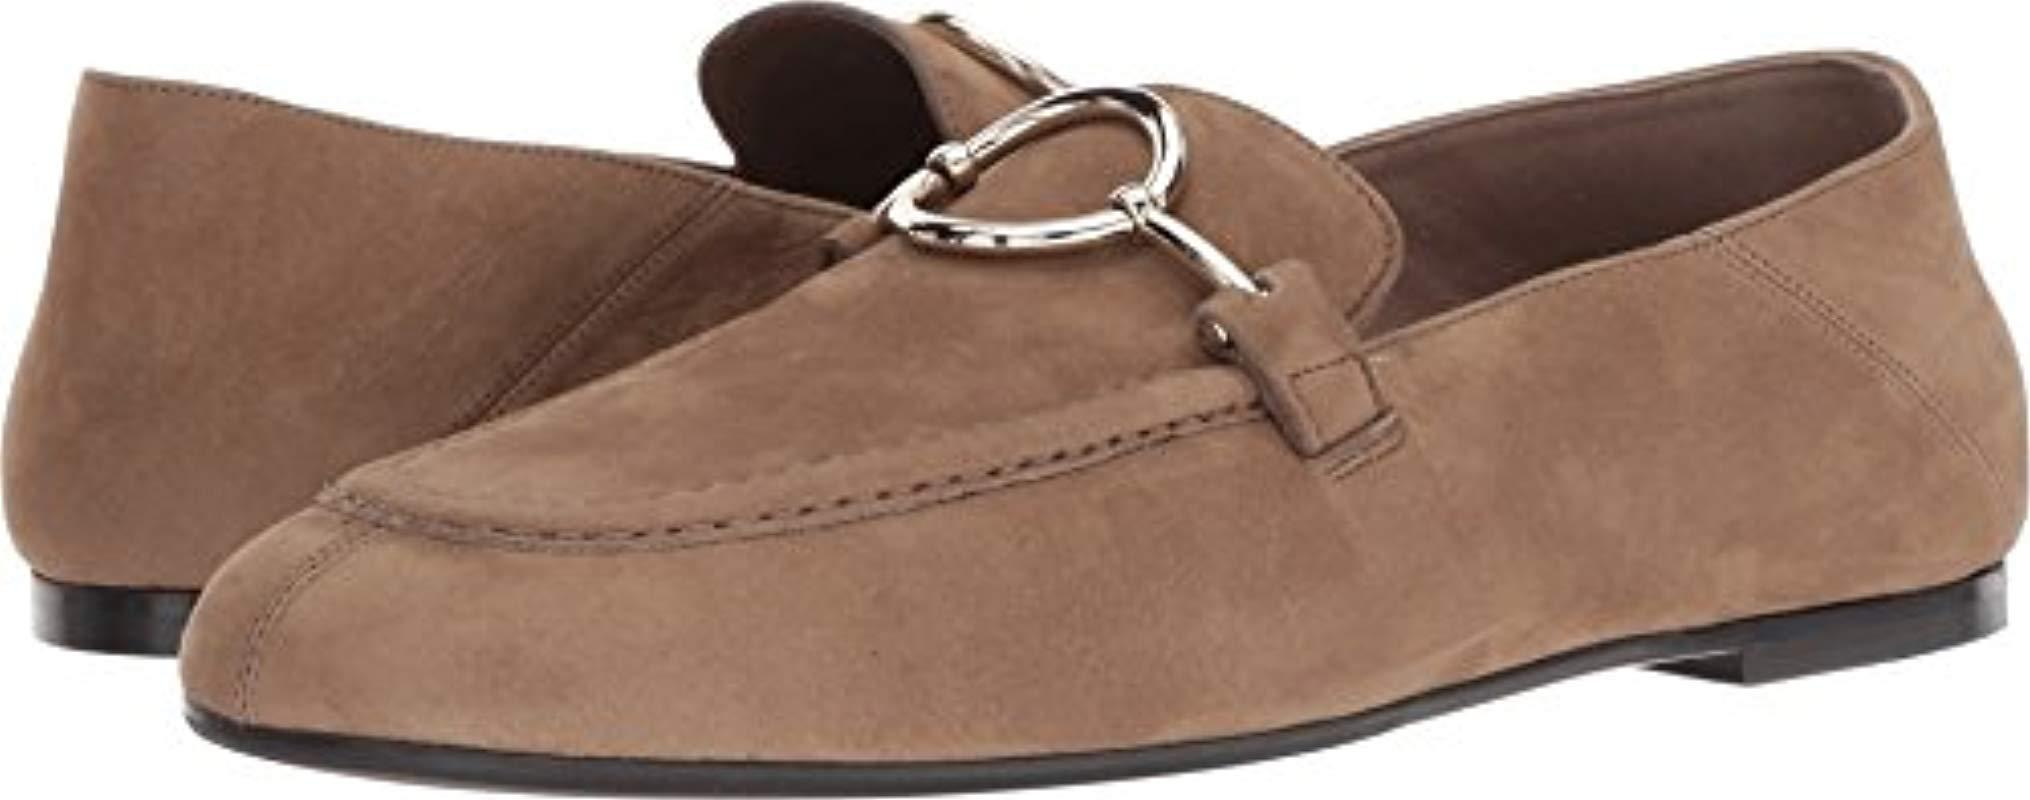 78fbe9b3a46 Lyst - Via Spiga Abby 2 in Brown - Save 55%